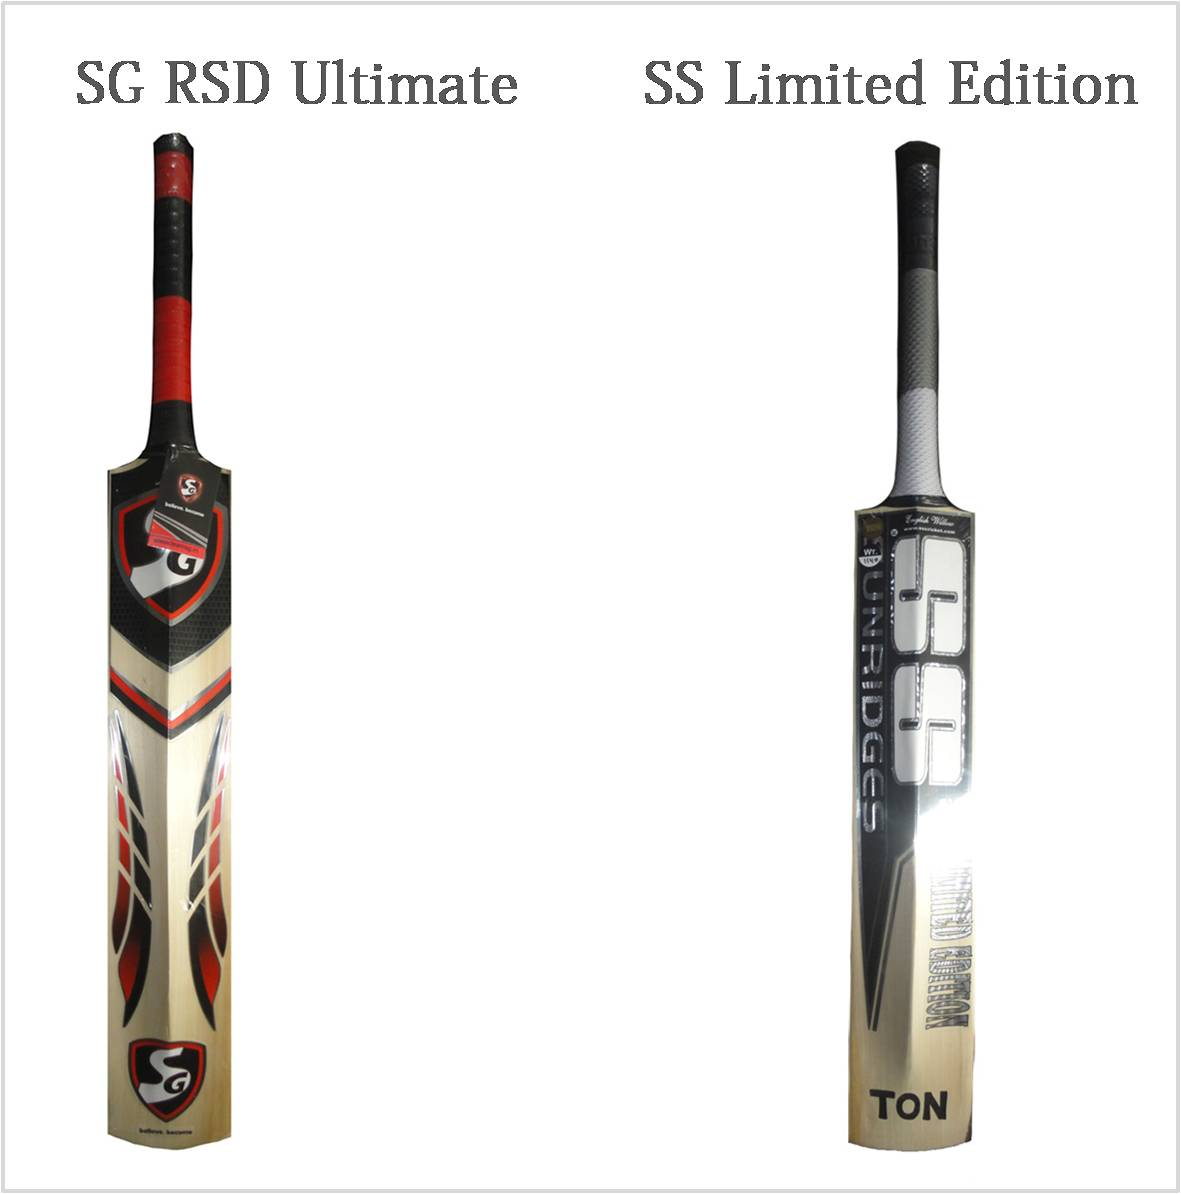 SS Cricket bats Vs Sg Cricket Bats 2